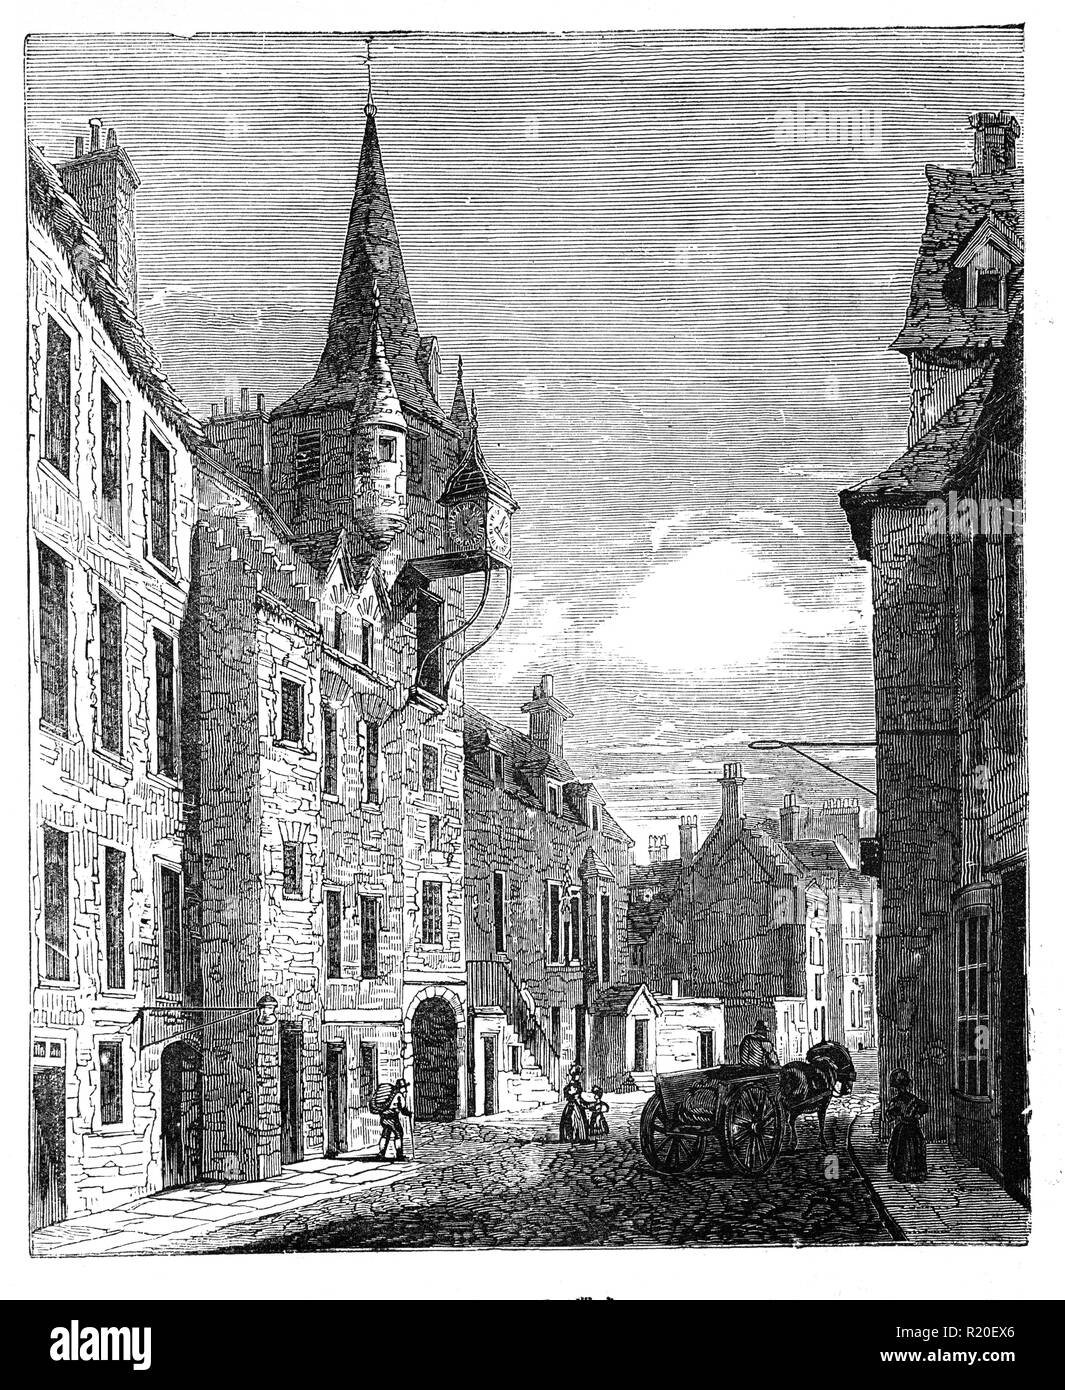 The Canongate Tolbooth was built in 1591 and would have formed the local hub for the Canongate burgh, along with the nearby Mercat Cross where merchants met and conducted their business. The Tolbooth would have had many functions, serving as courthouse, burgh jail and meeting place of the town council. The building was constructed for Sir Lewis Bellenden, the justice-clerk for the burgh, and his initials can still be seen over the archway to Tolbooth Wynd. Edinburgh, Scotland - Stock Image